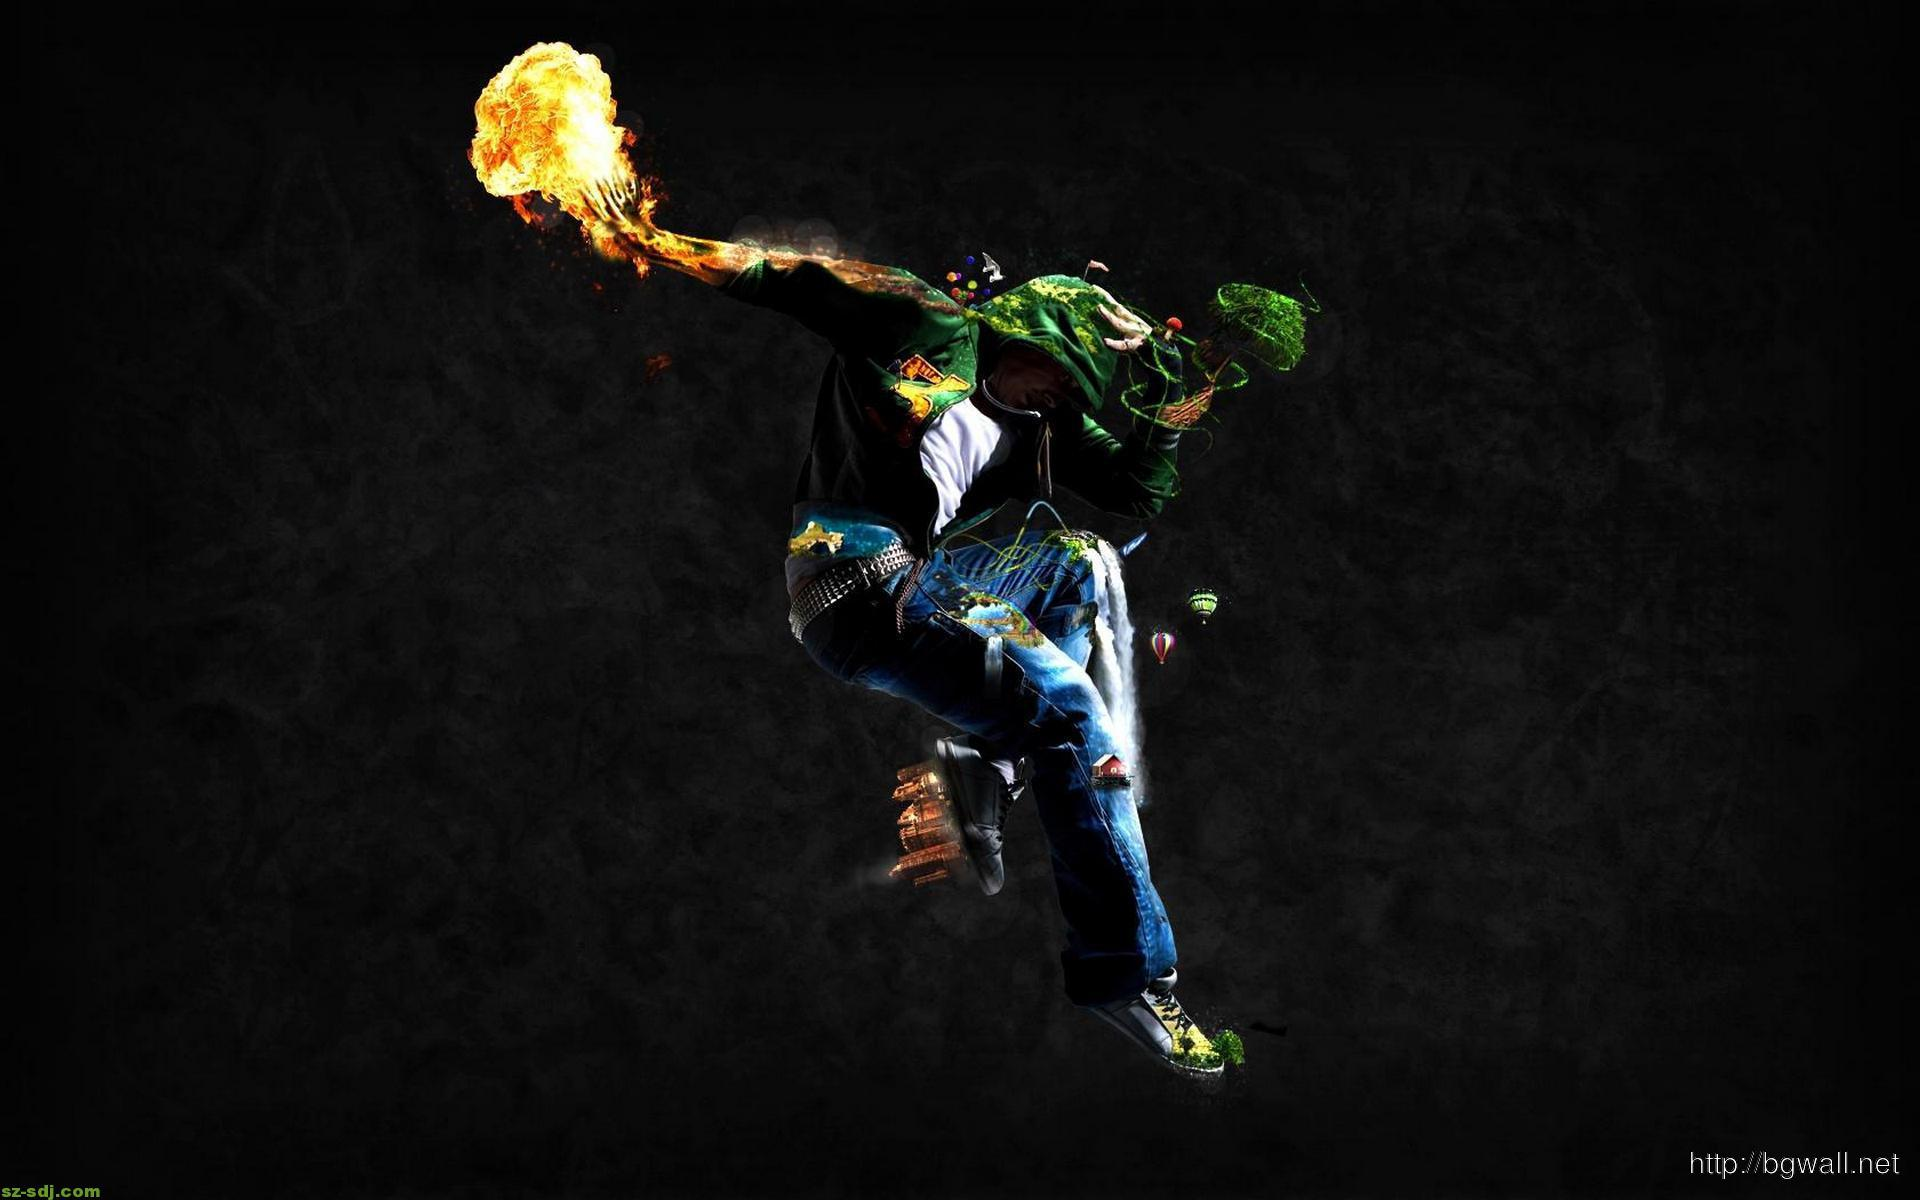 amazing-boy-break-dance-wallpaper-picture